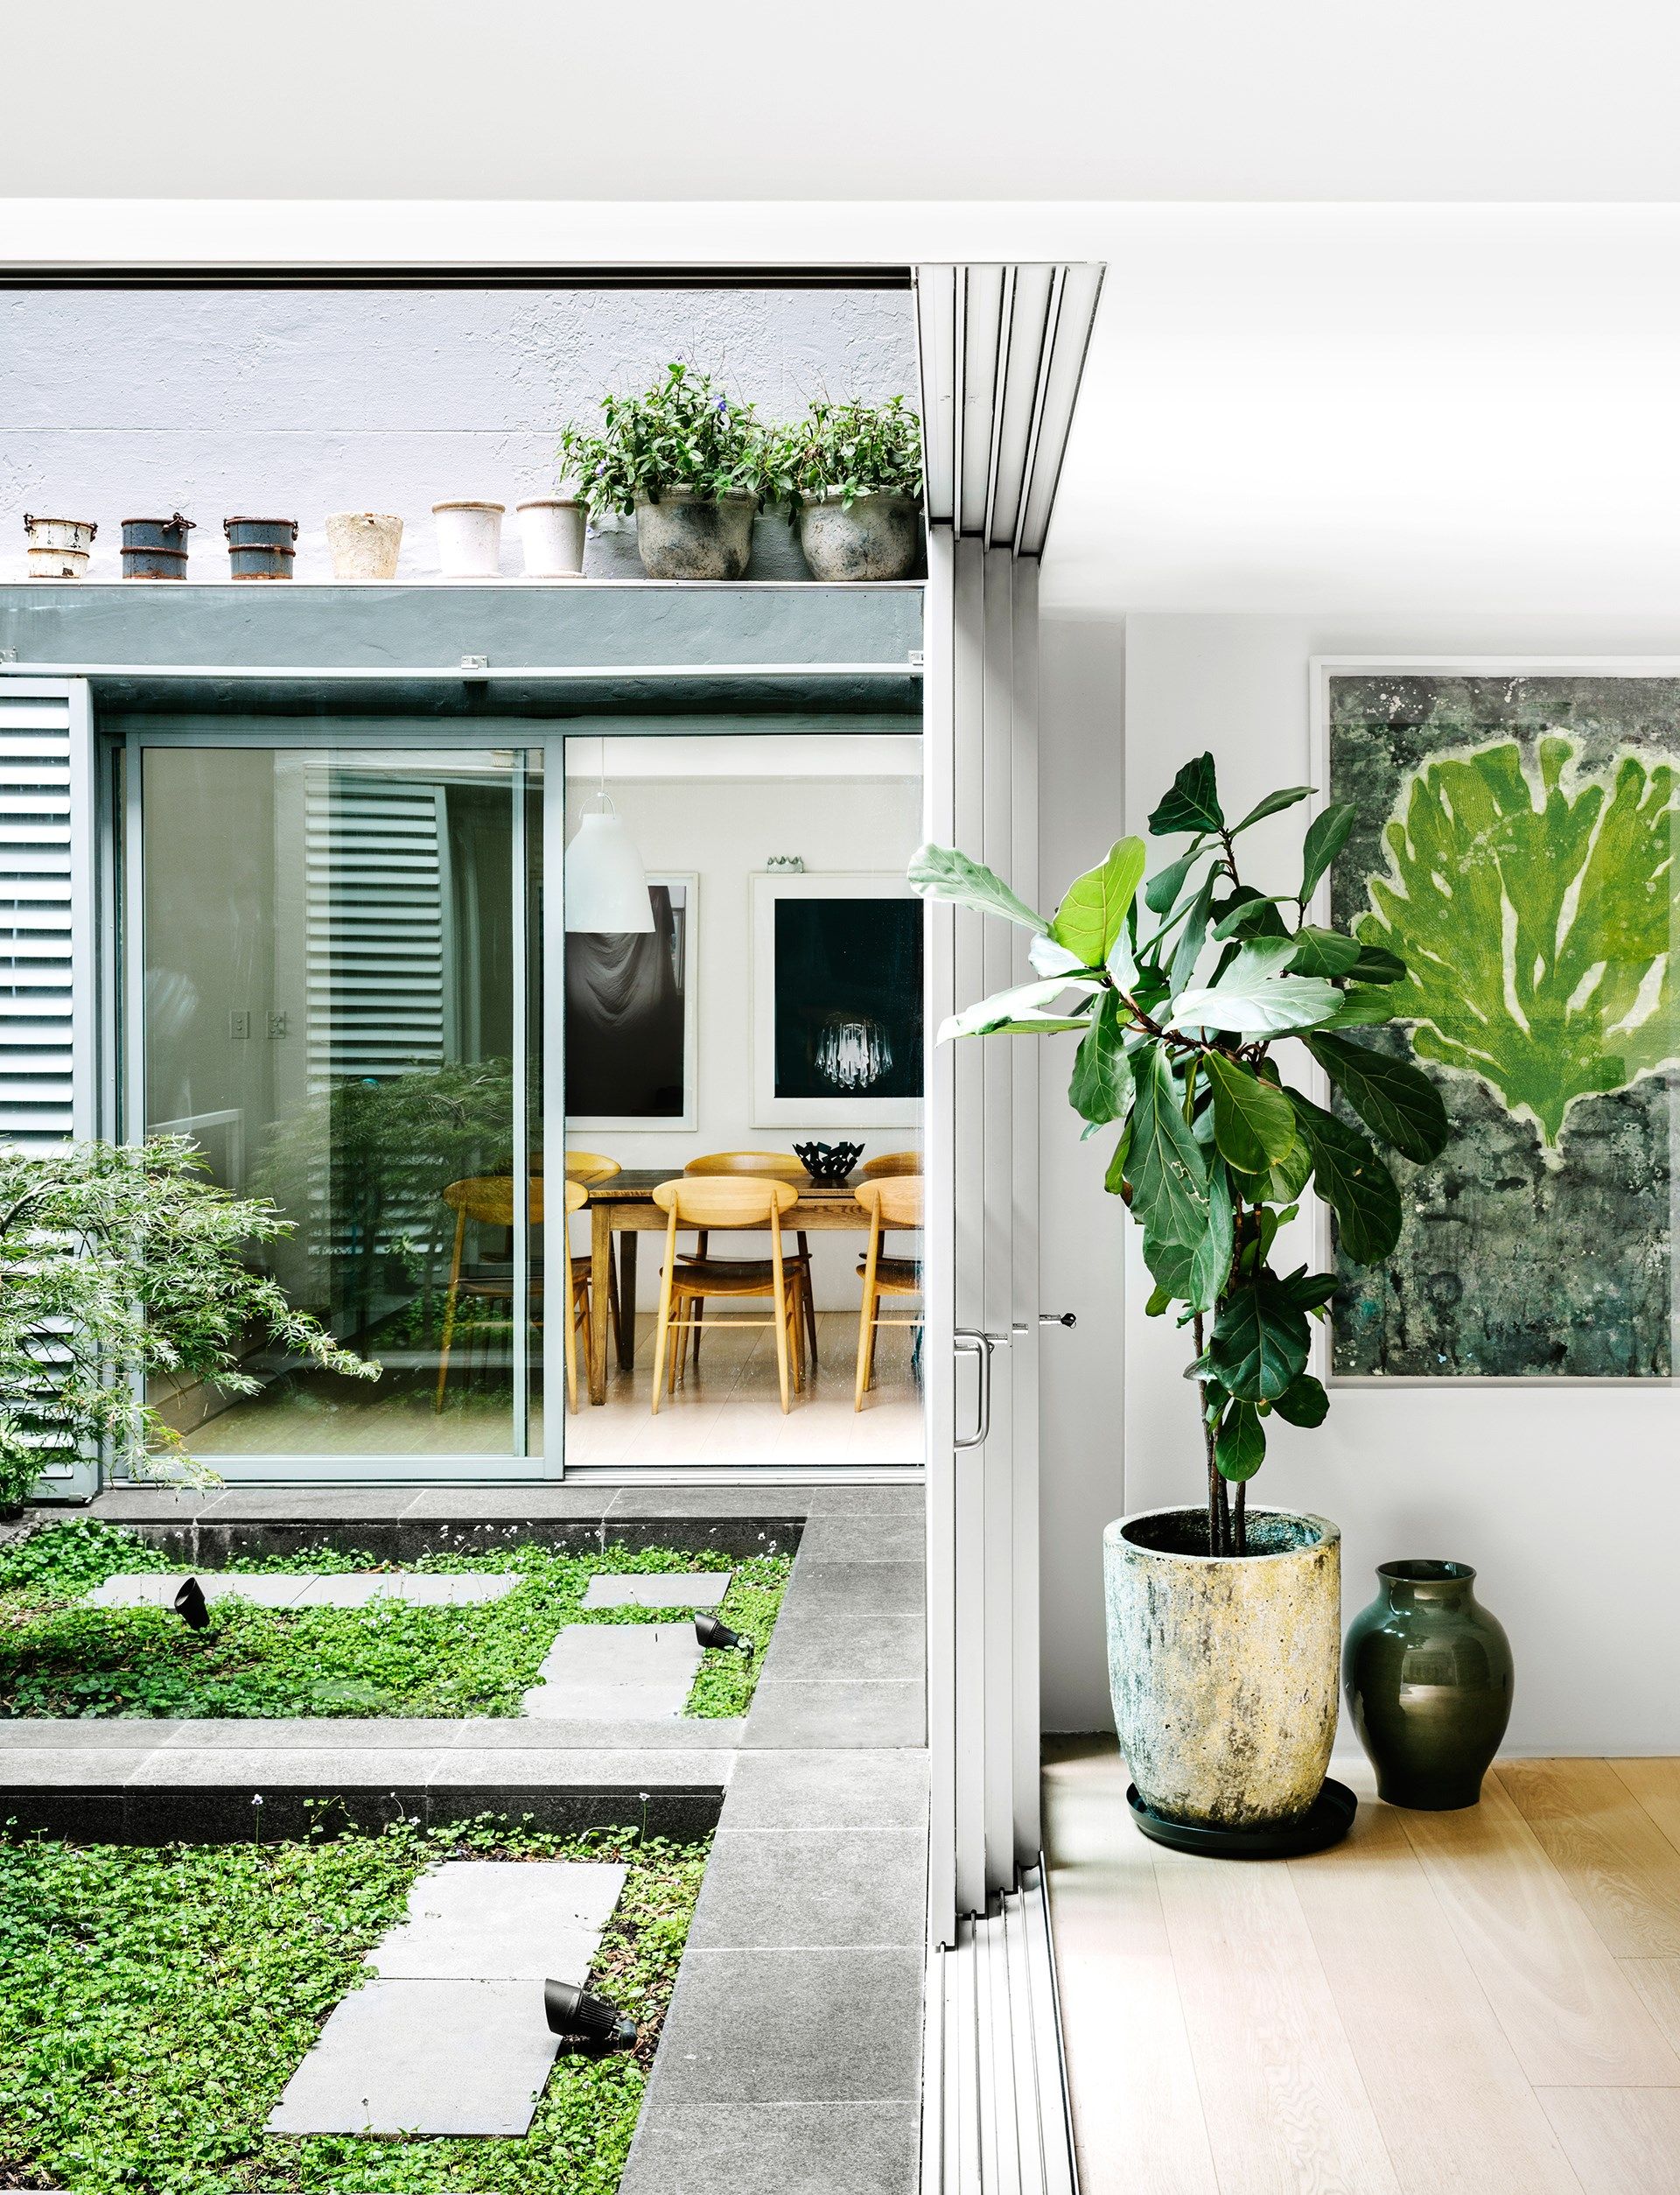 This [four-bedroom terrace in Sydney's Eastern Suburbs](http://www.homestolove.com.au/scandi-style-terrace-house-with-space-to-spare-1669/) has been rejigged to accommodate for family living and refresh with Scandi-inspired style.